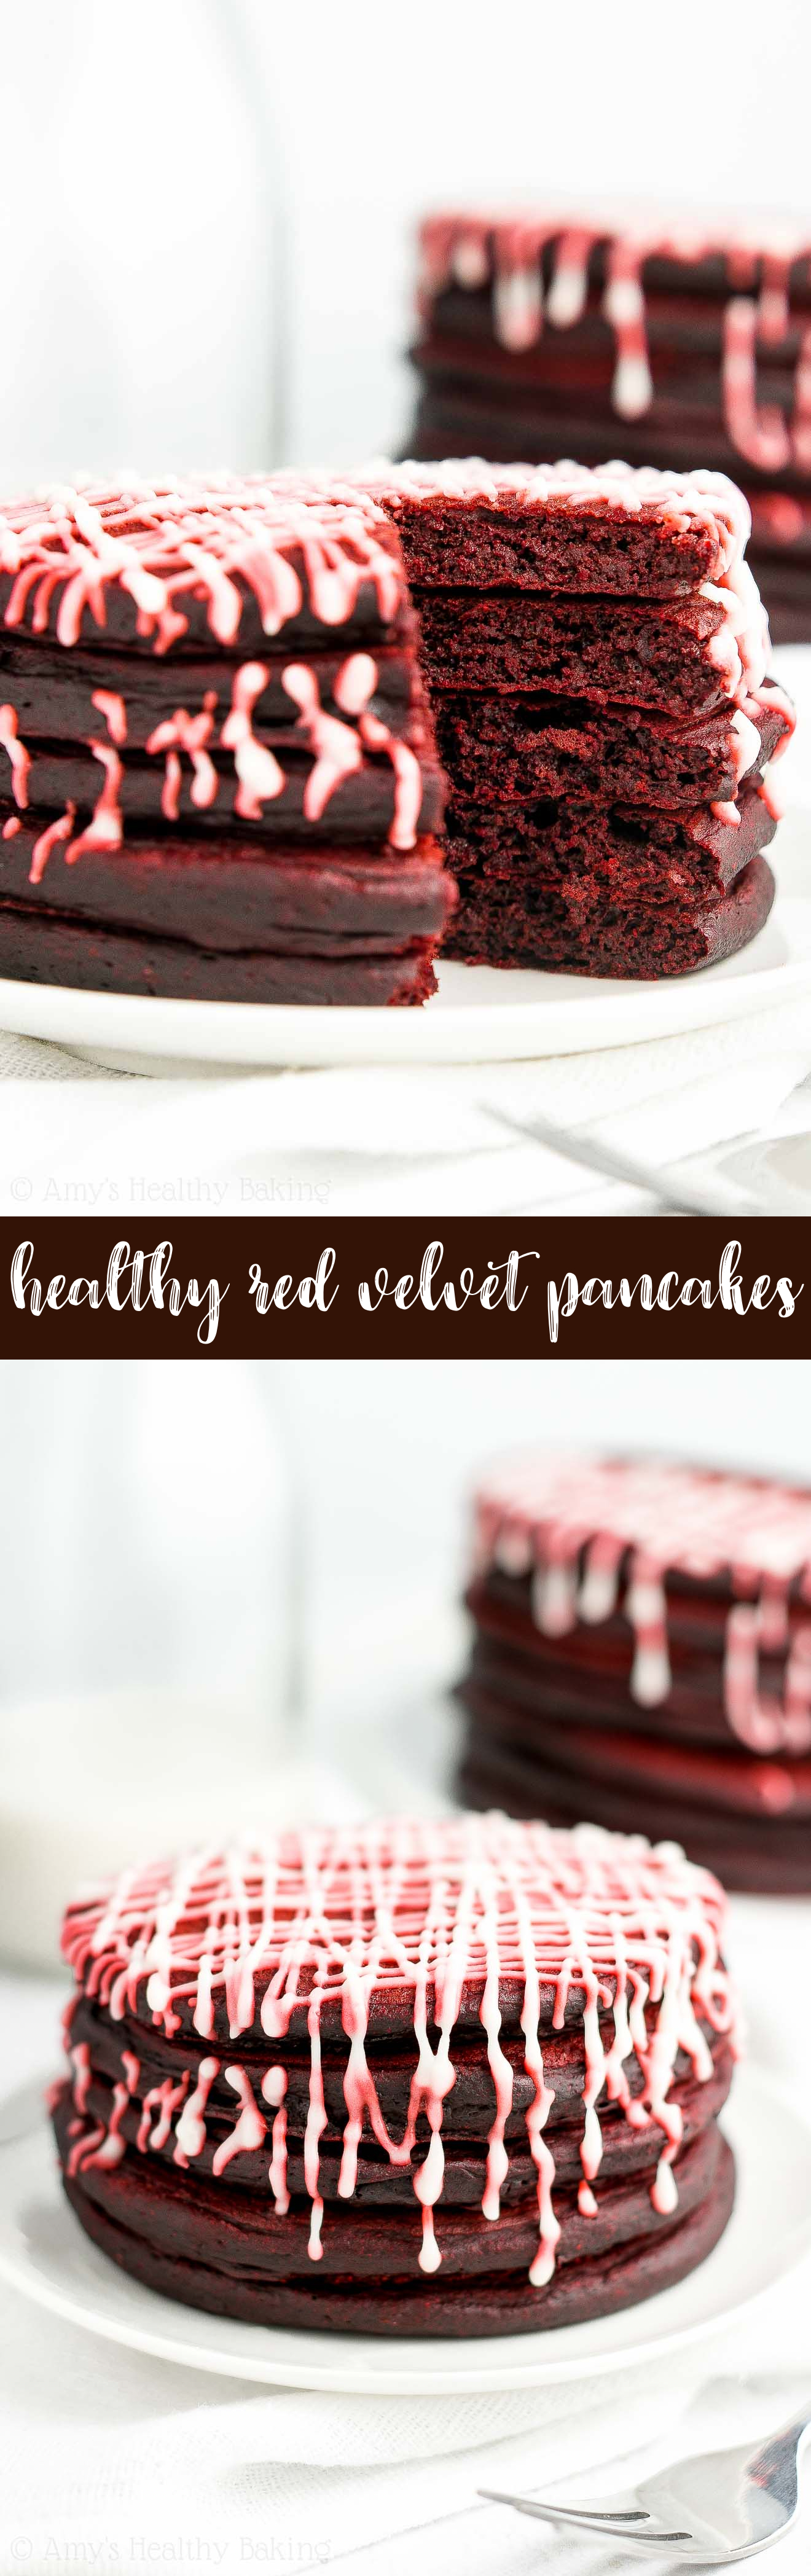 Weight Watchers Red Velvet Cake Nutrition